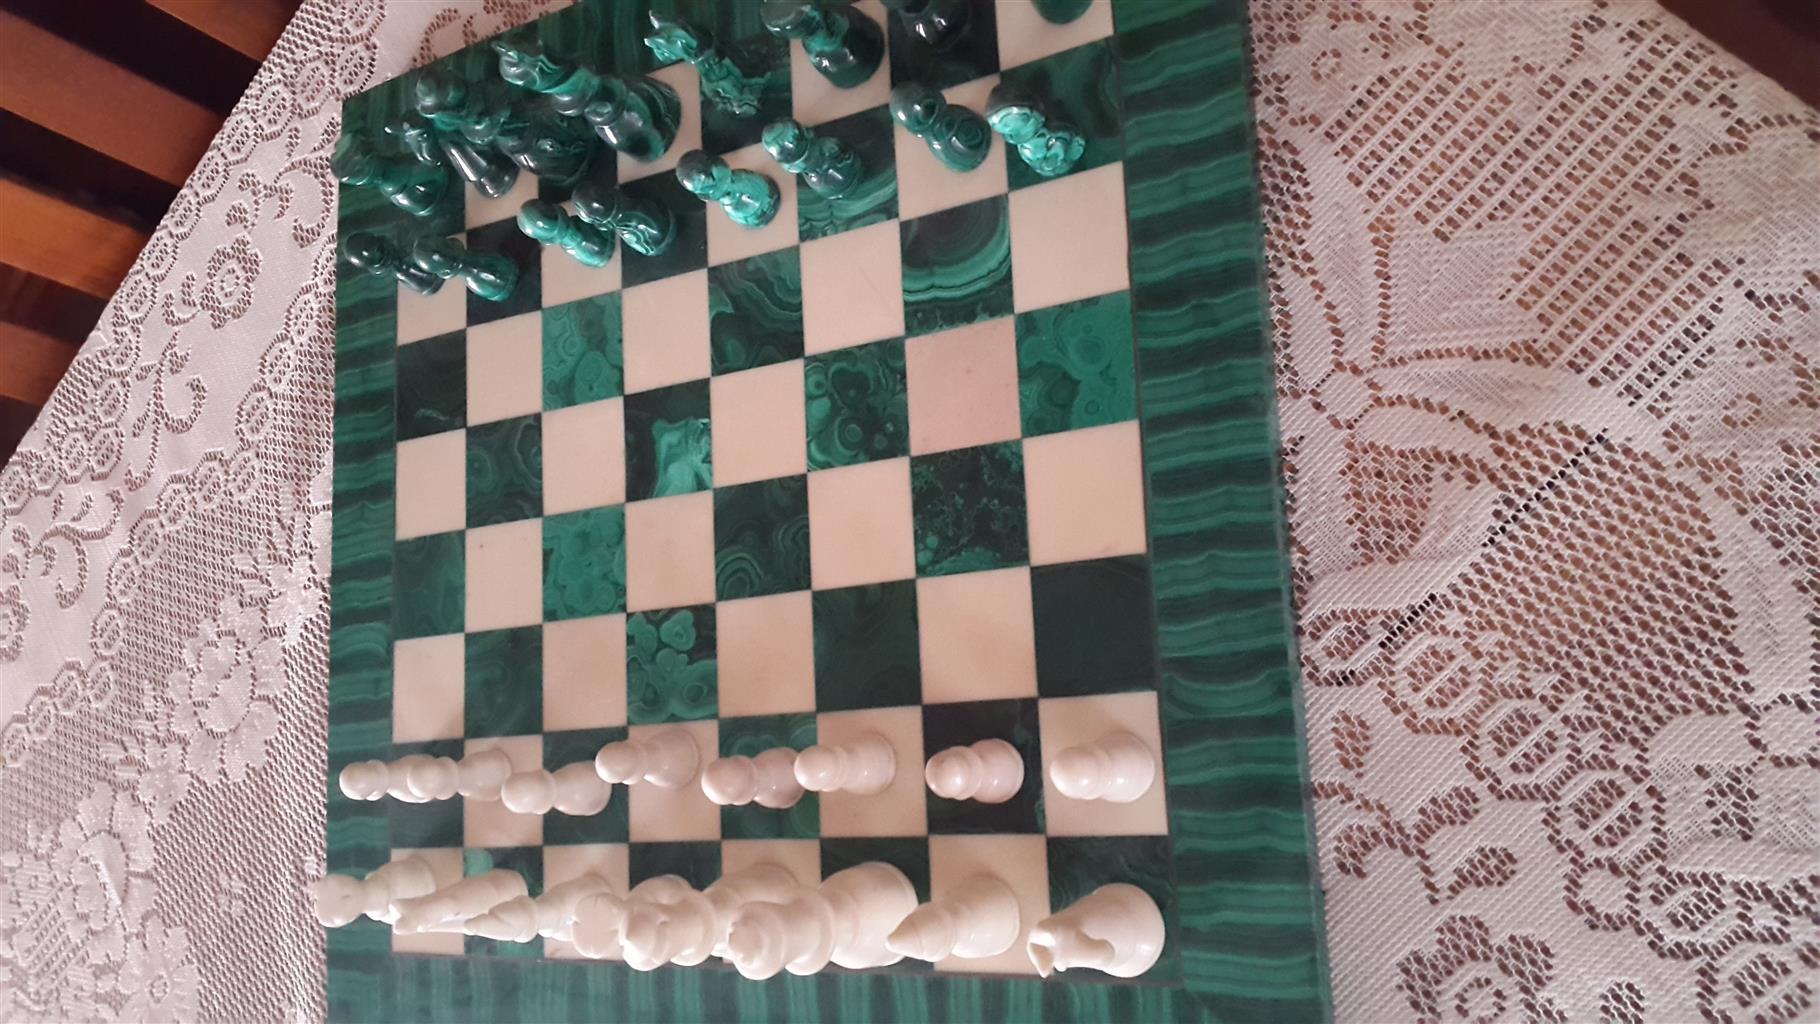 CHESS SET FOR SALE